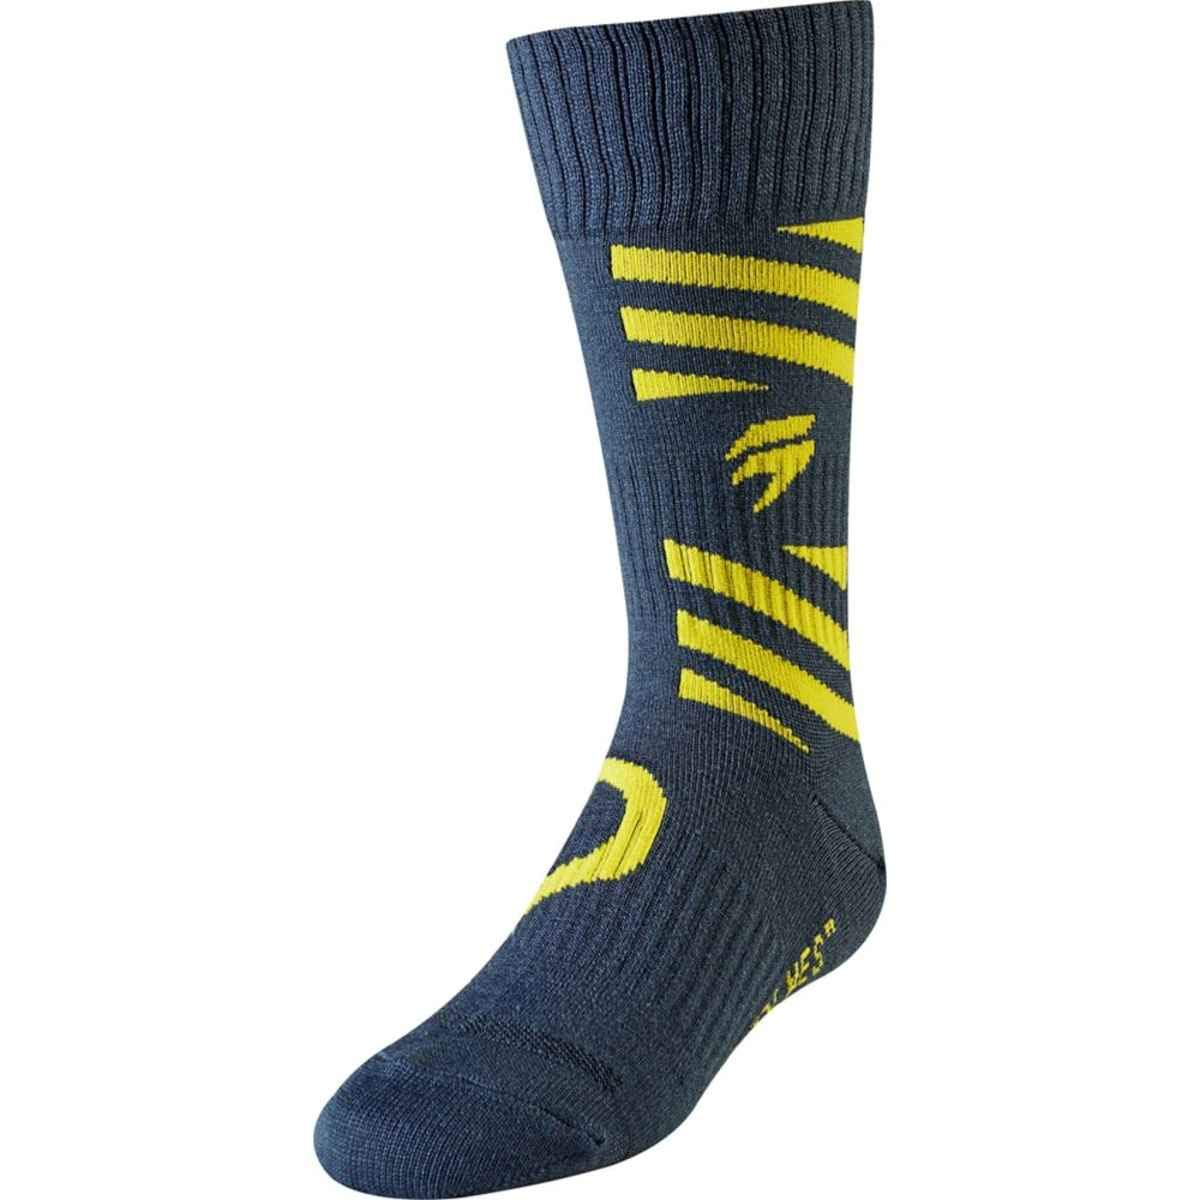 Shift Racing Whit3 Muse Youth Off-Road Motorcycle Socks